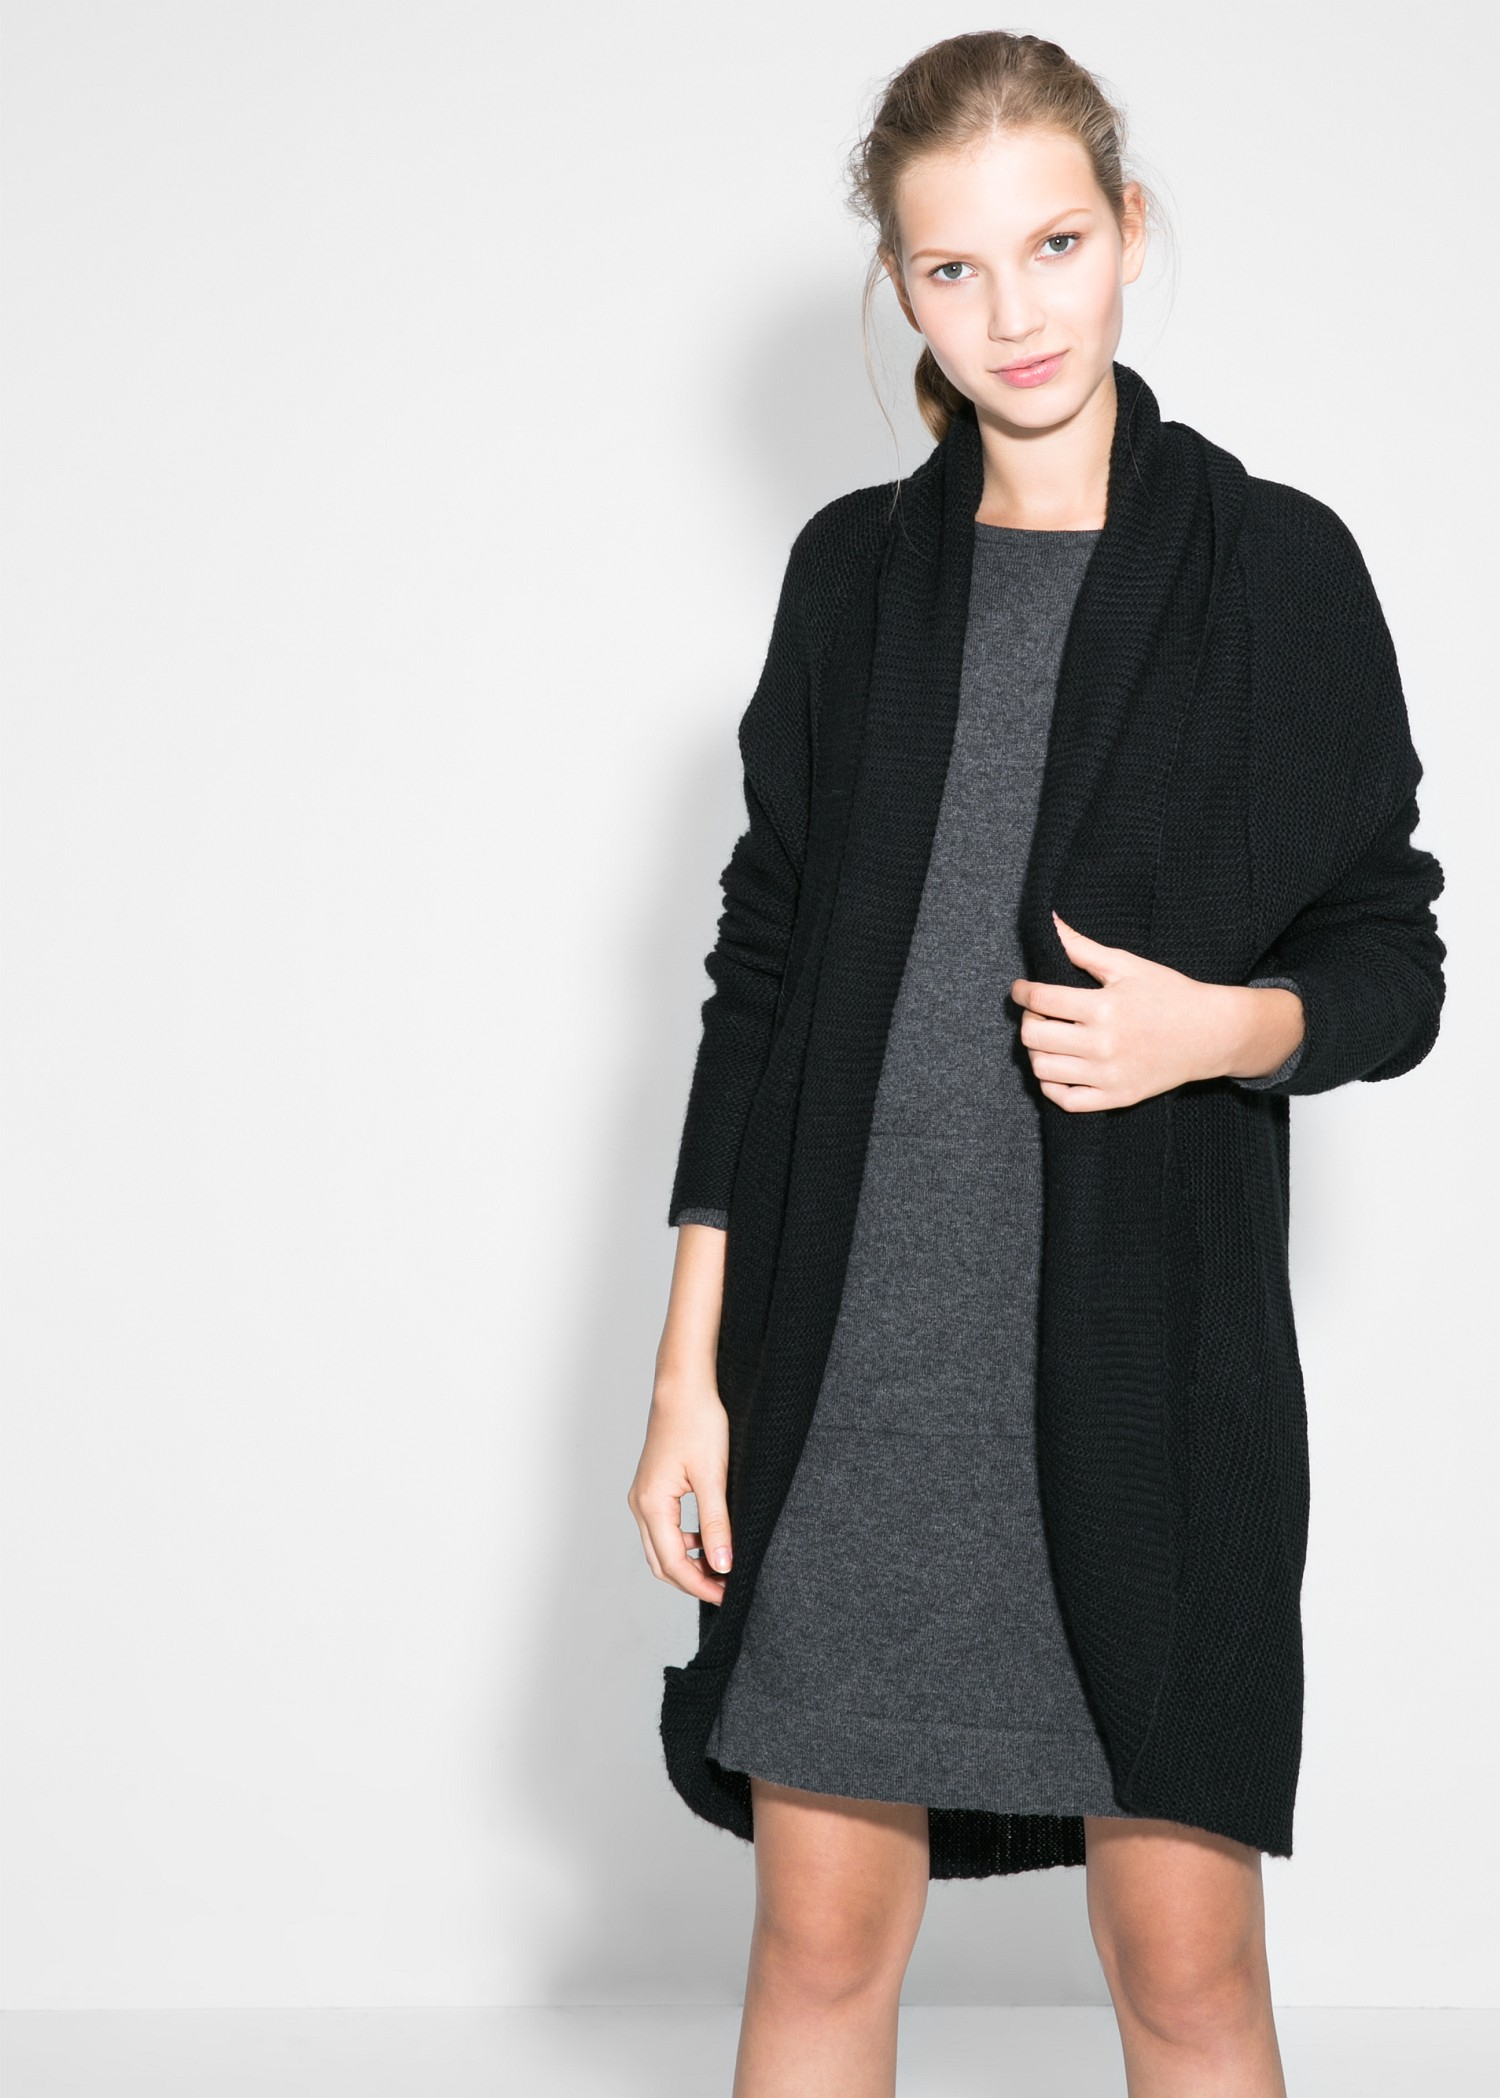 Mango Lapel Wool-Blend Cardigan in Black | Lyst